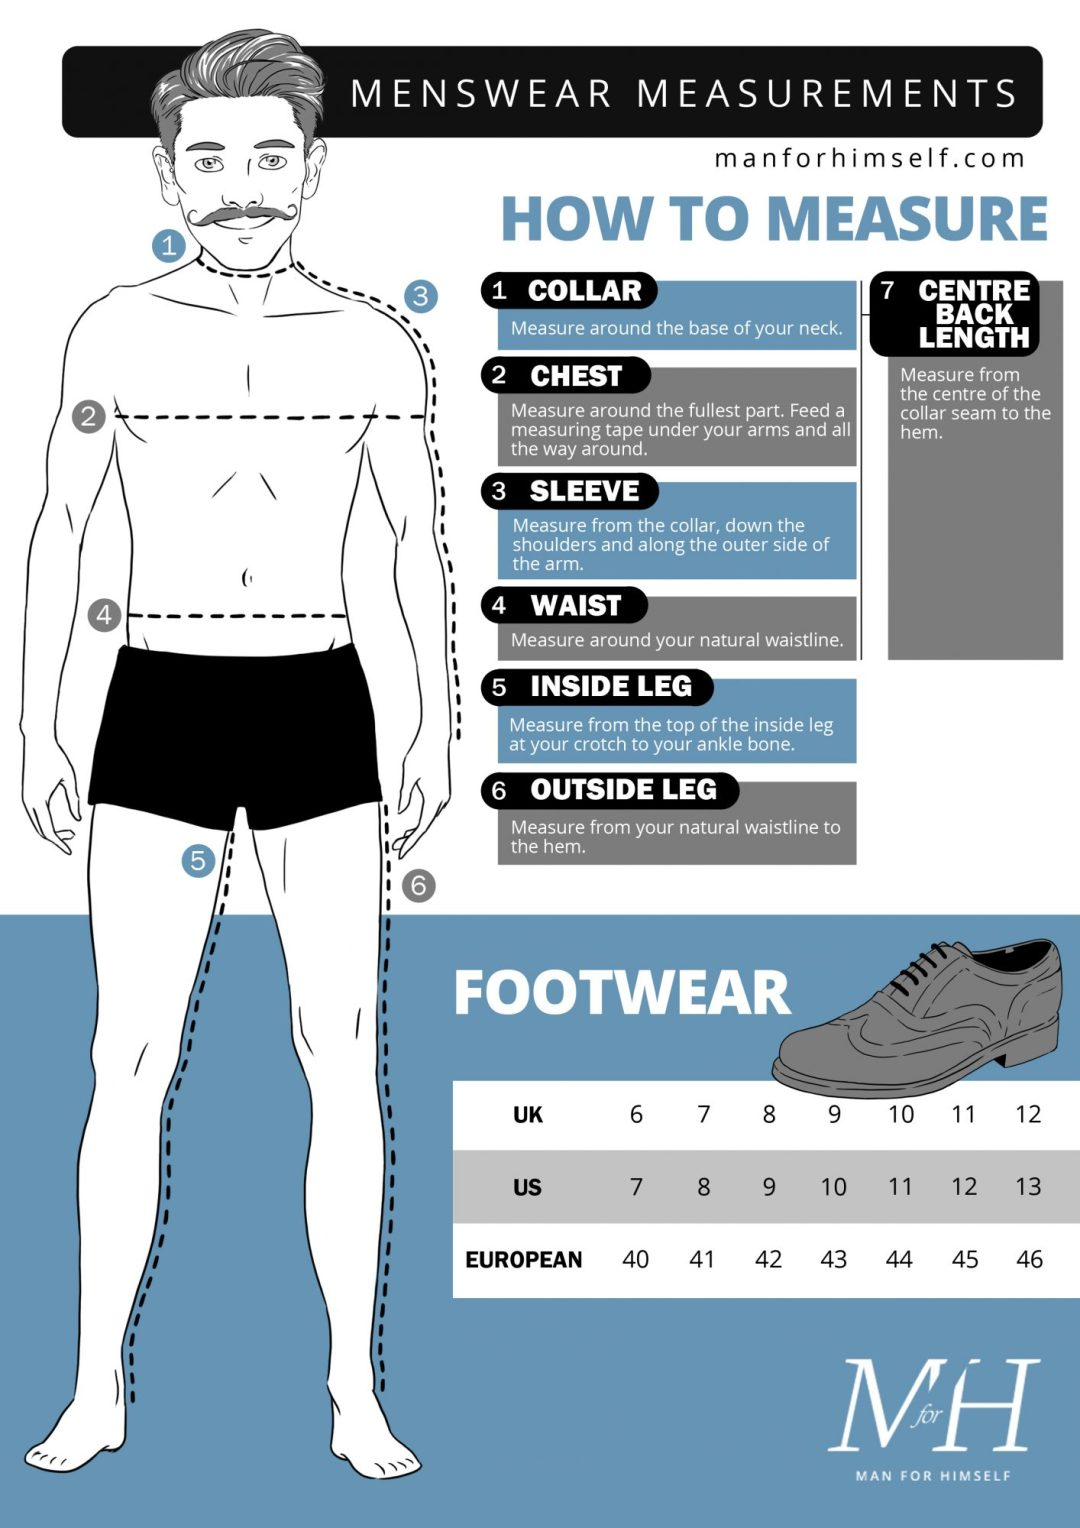 mens-measurements-measure-size-image-diagram-mfh-how-to-menswear_measure_amend